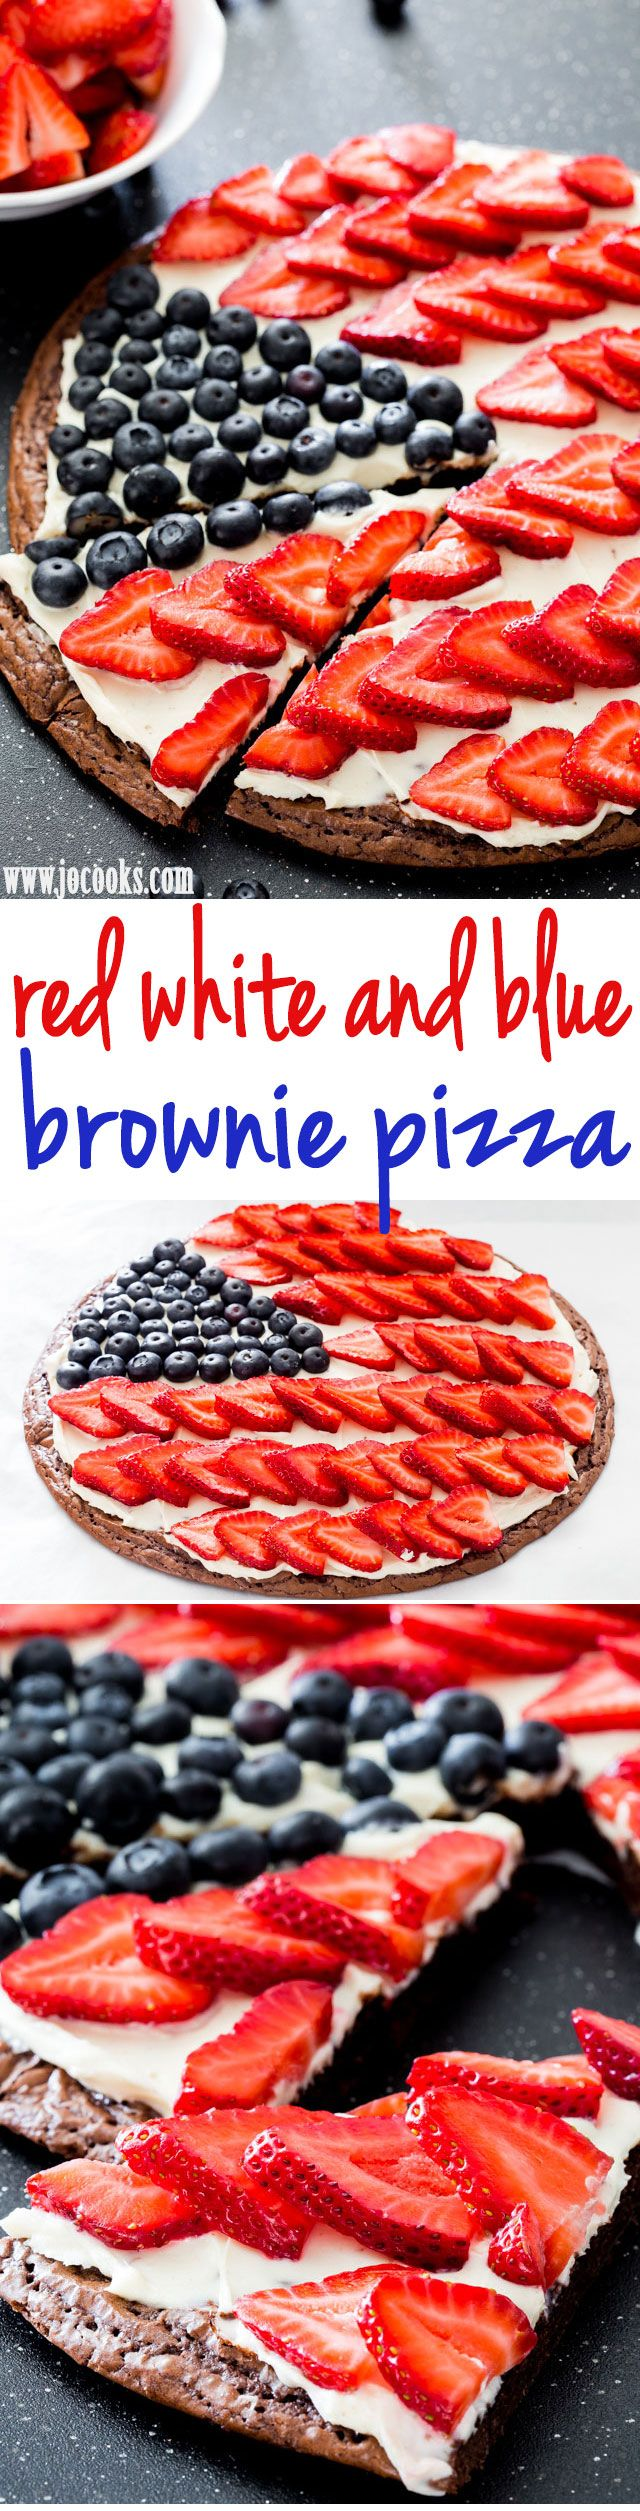 17 Best images about 4th of July Ideas I Love on Pinterest ...